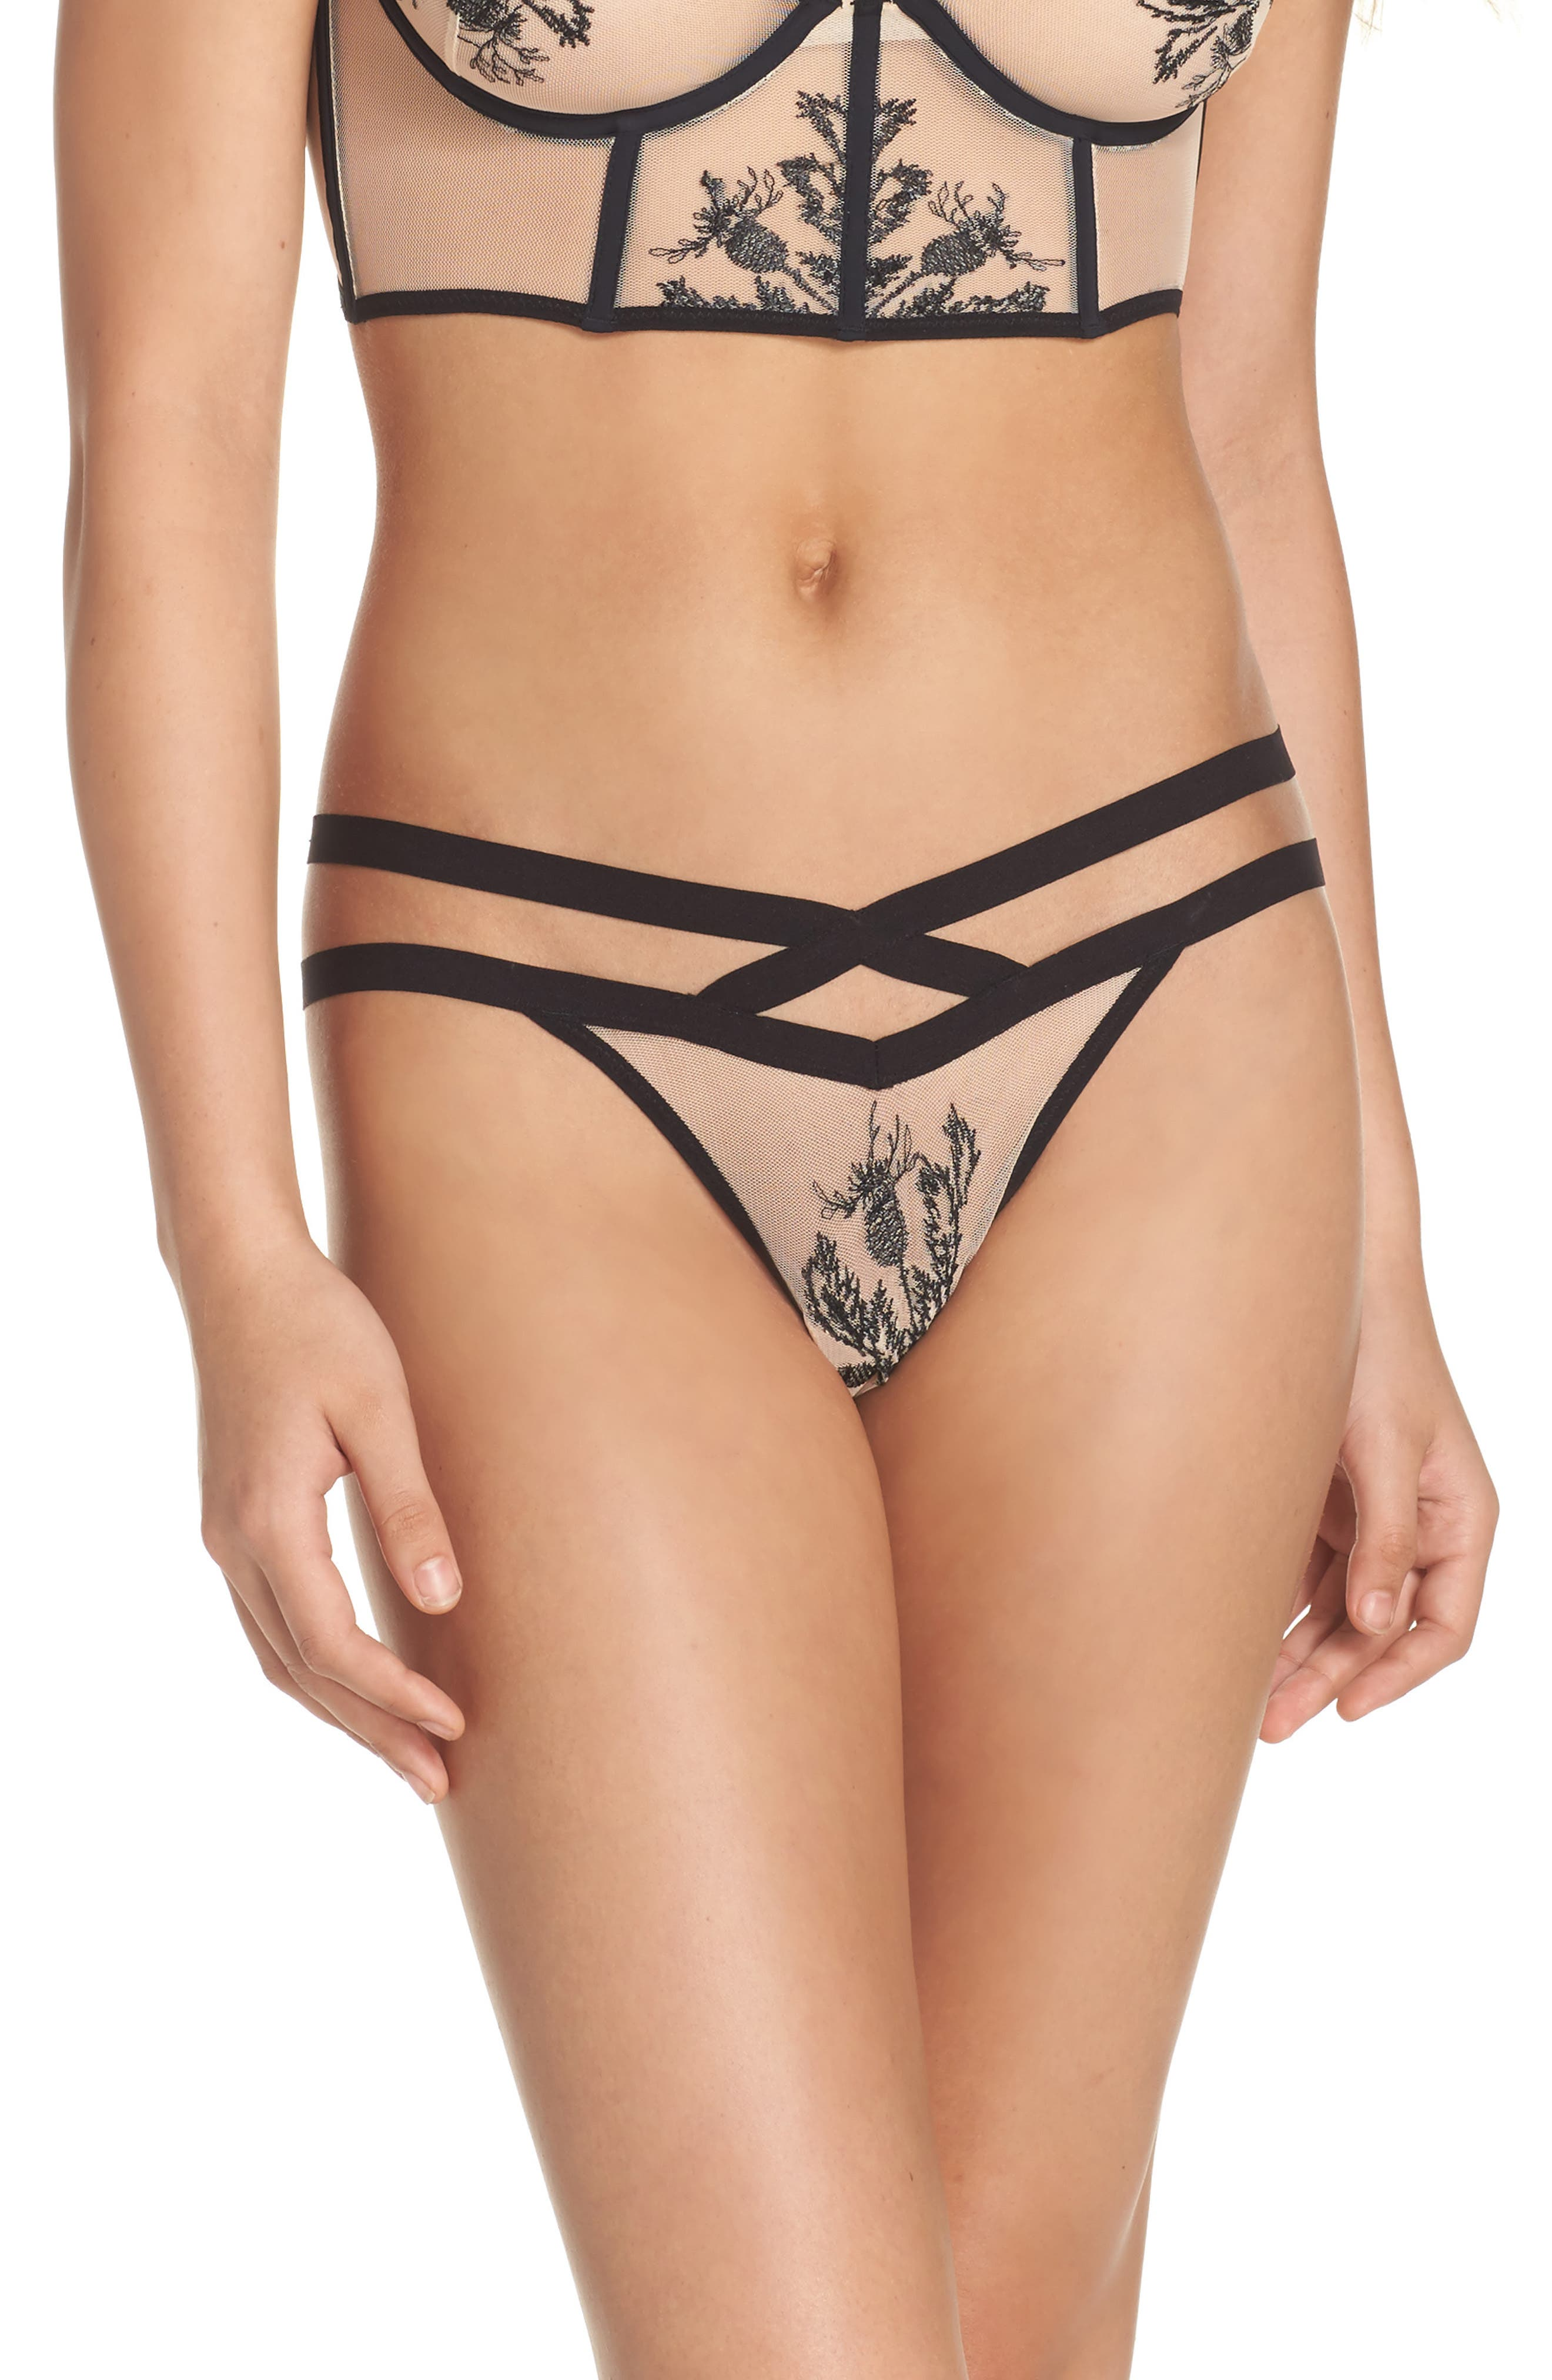 Main Image - Thistle & Spire Verona Embroidered Mesh Thong